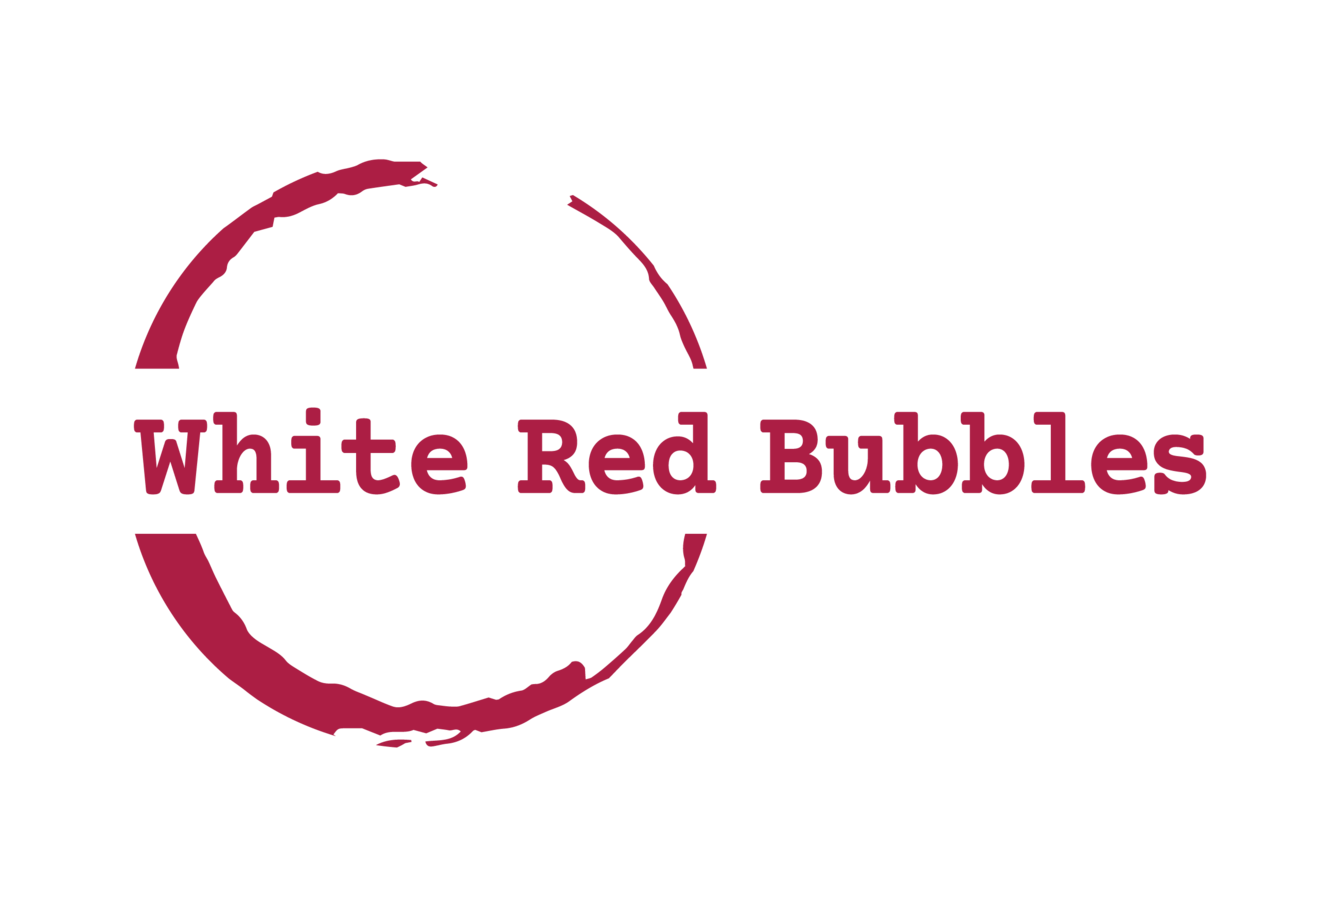 White Red Bubbles